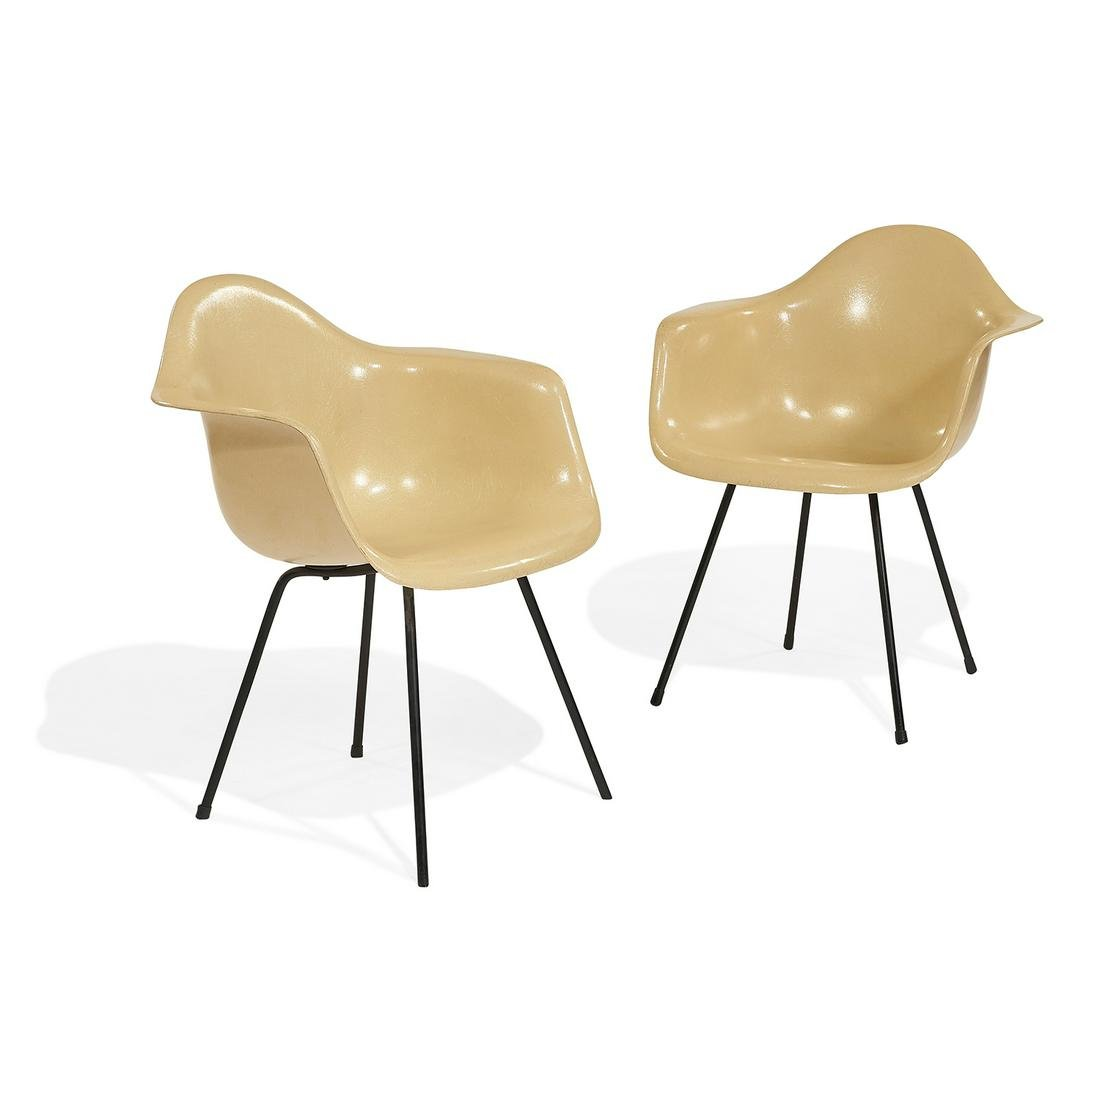 Charles & Ray Eames for Herman Miller chairs